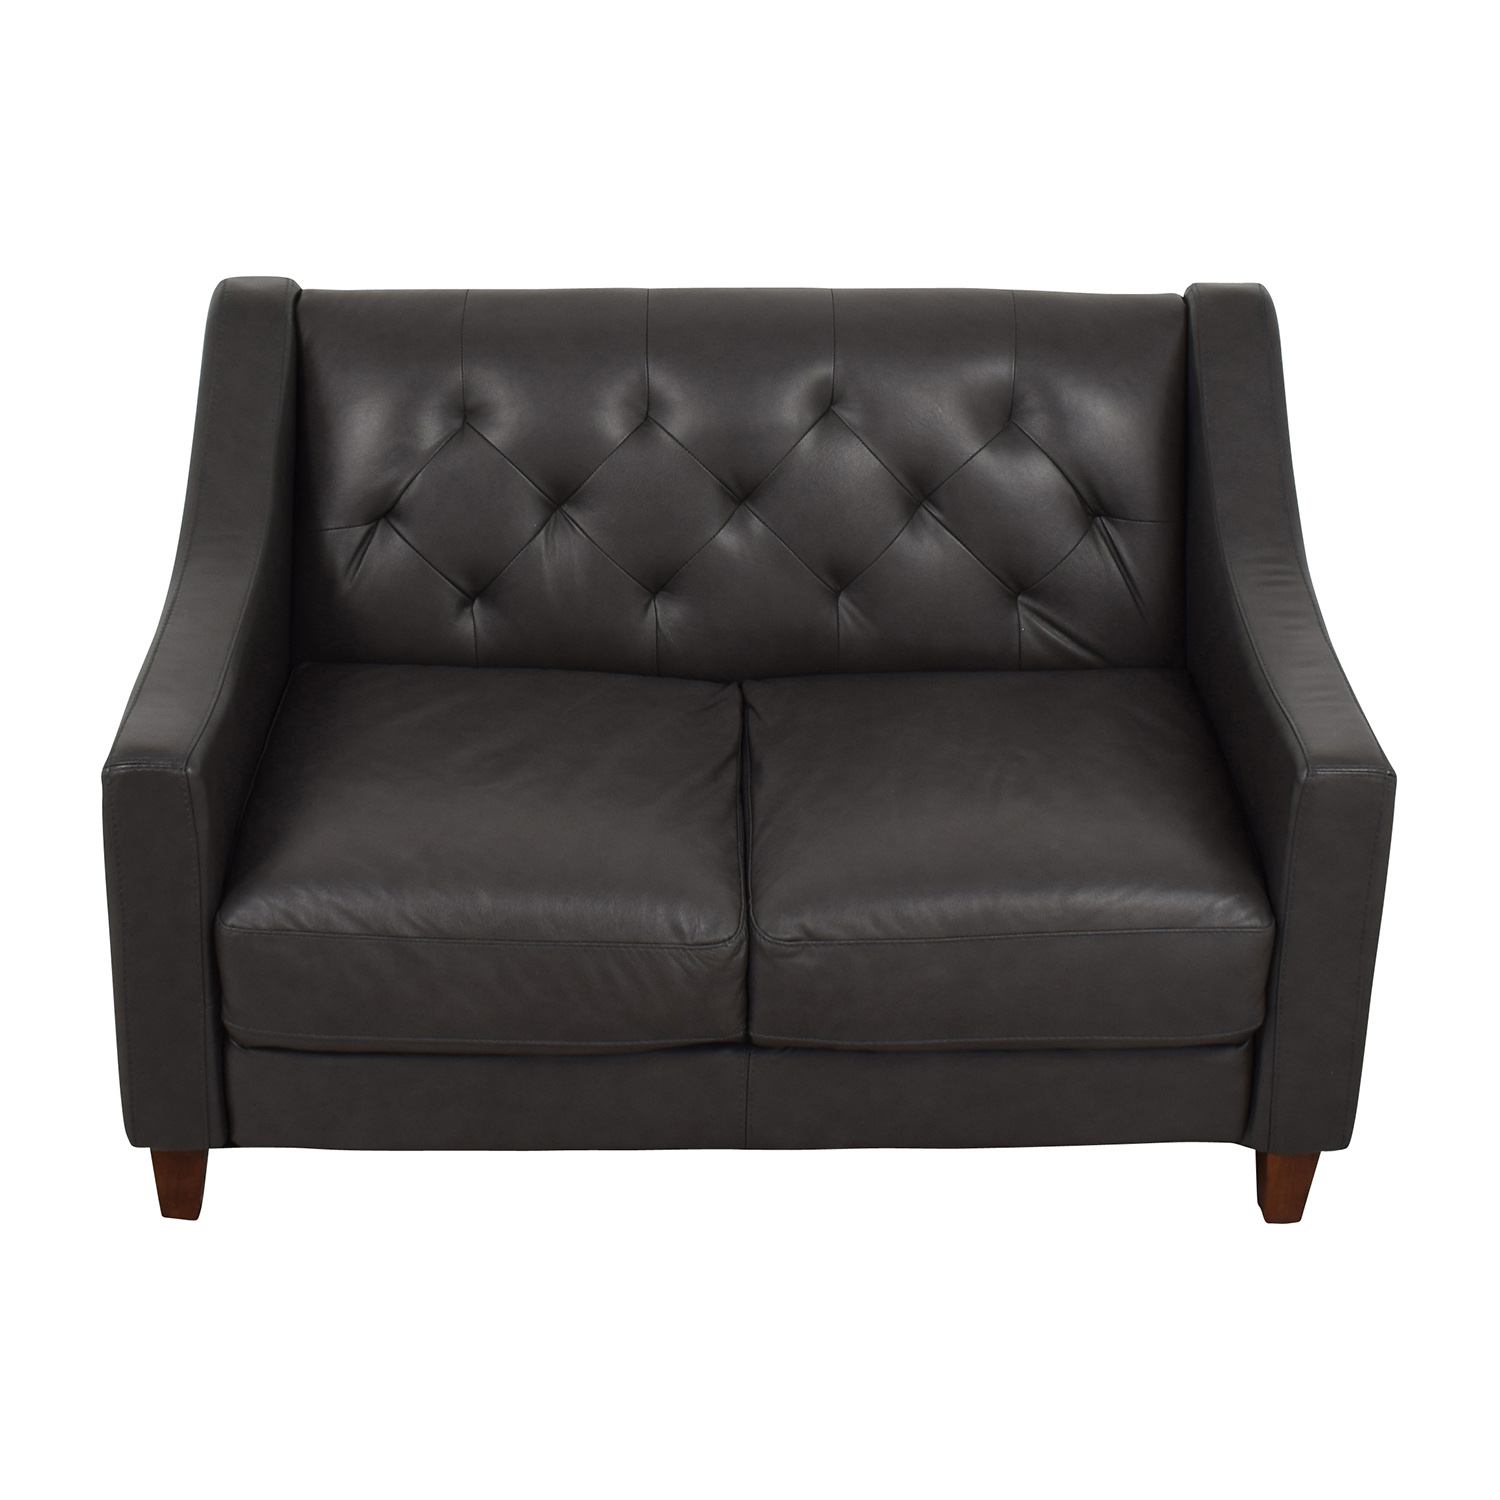 buy Macys Macys Tufted Leather Loveseat online